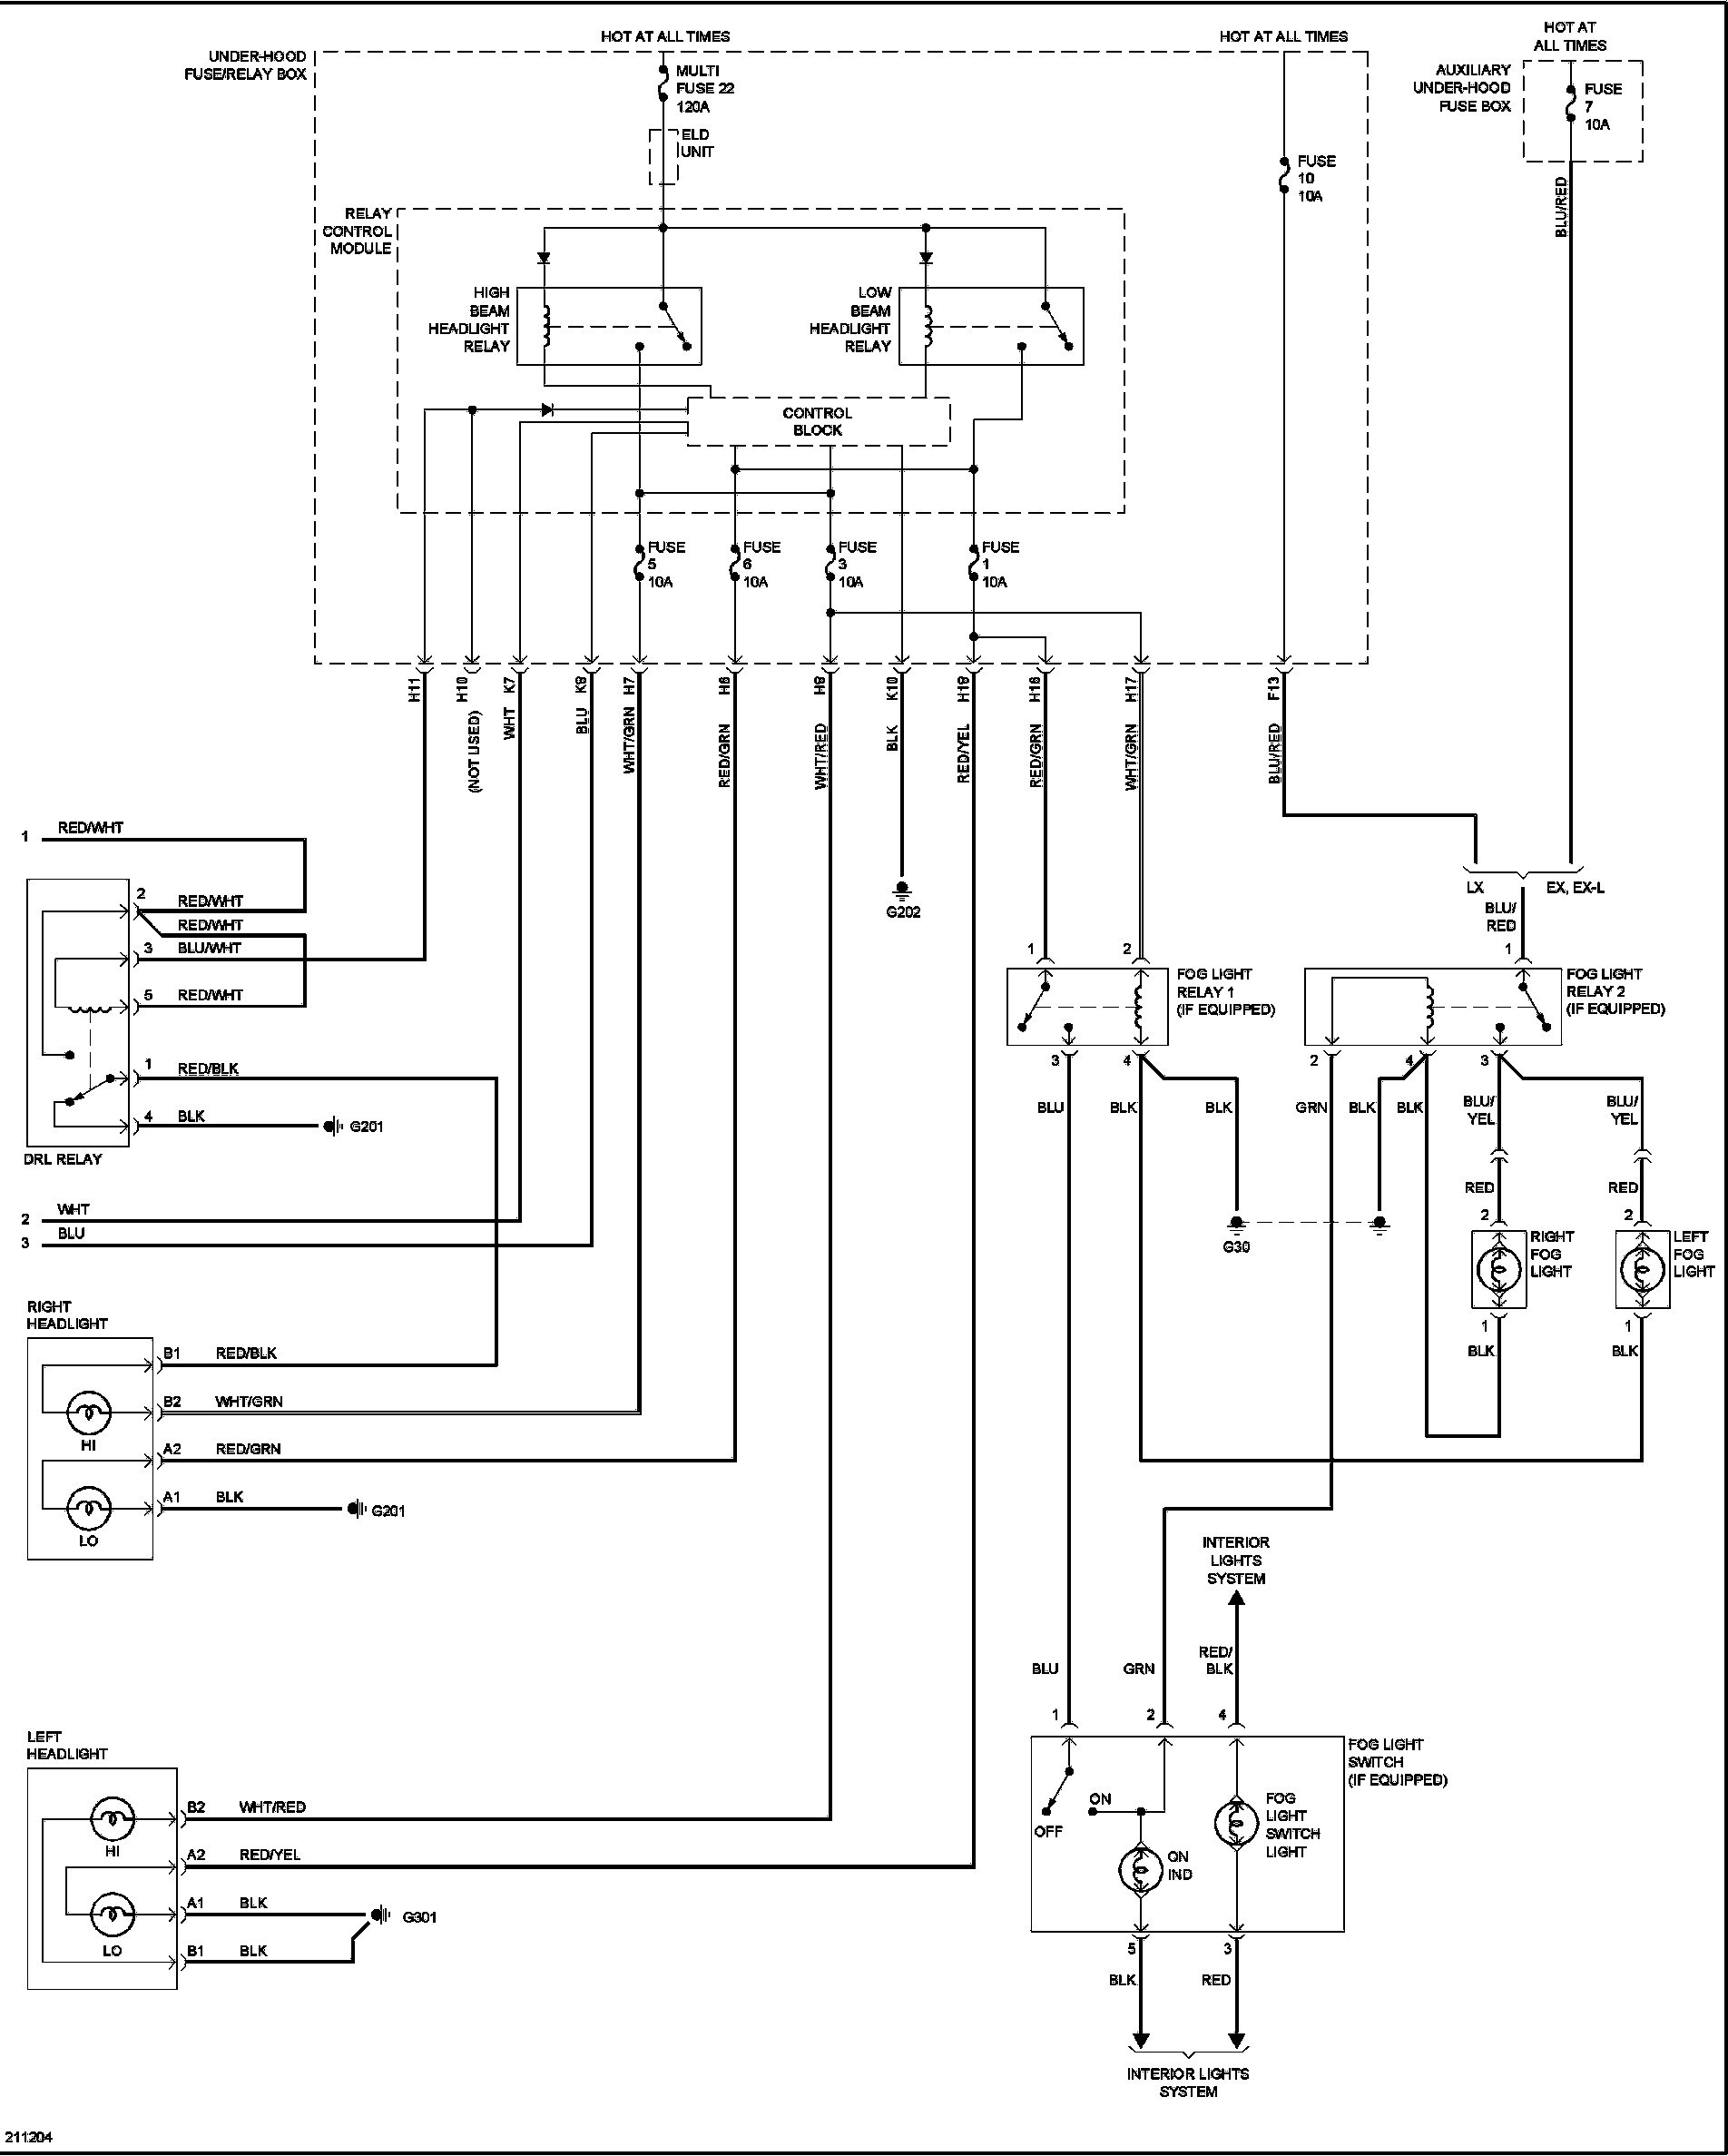 hight resolution of honda headlight wiring diagram wiring diagrams 2008 honda civic headlight wiring diagram 2005 honda civic headlight